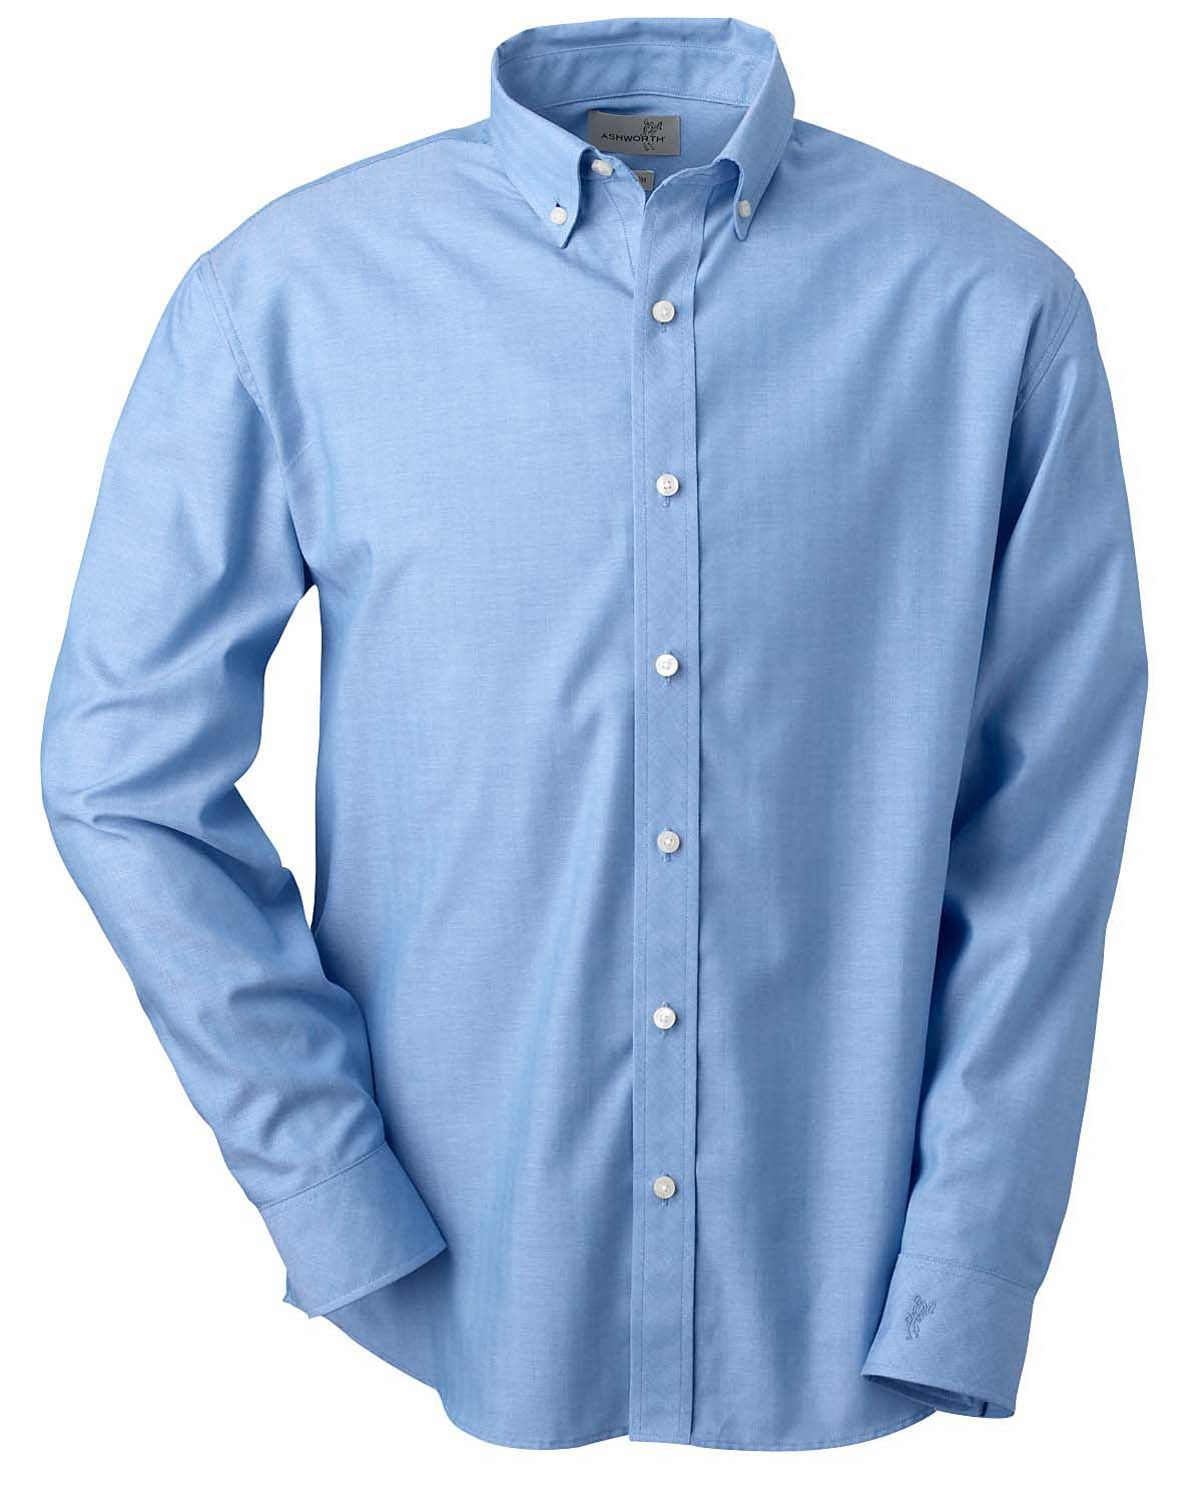 mens dress shirt - Google Search | the history of the shirt ...